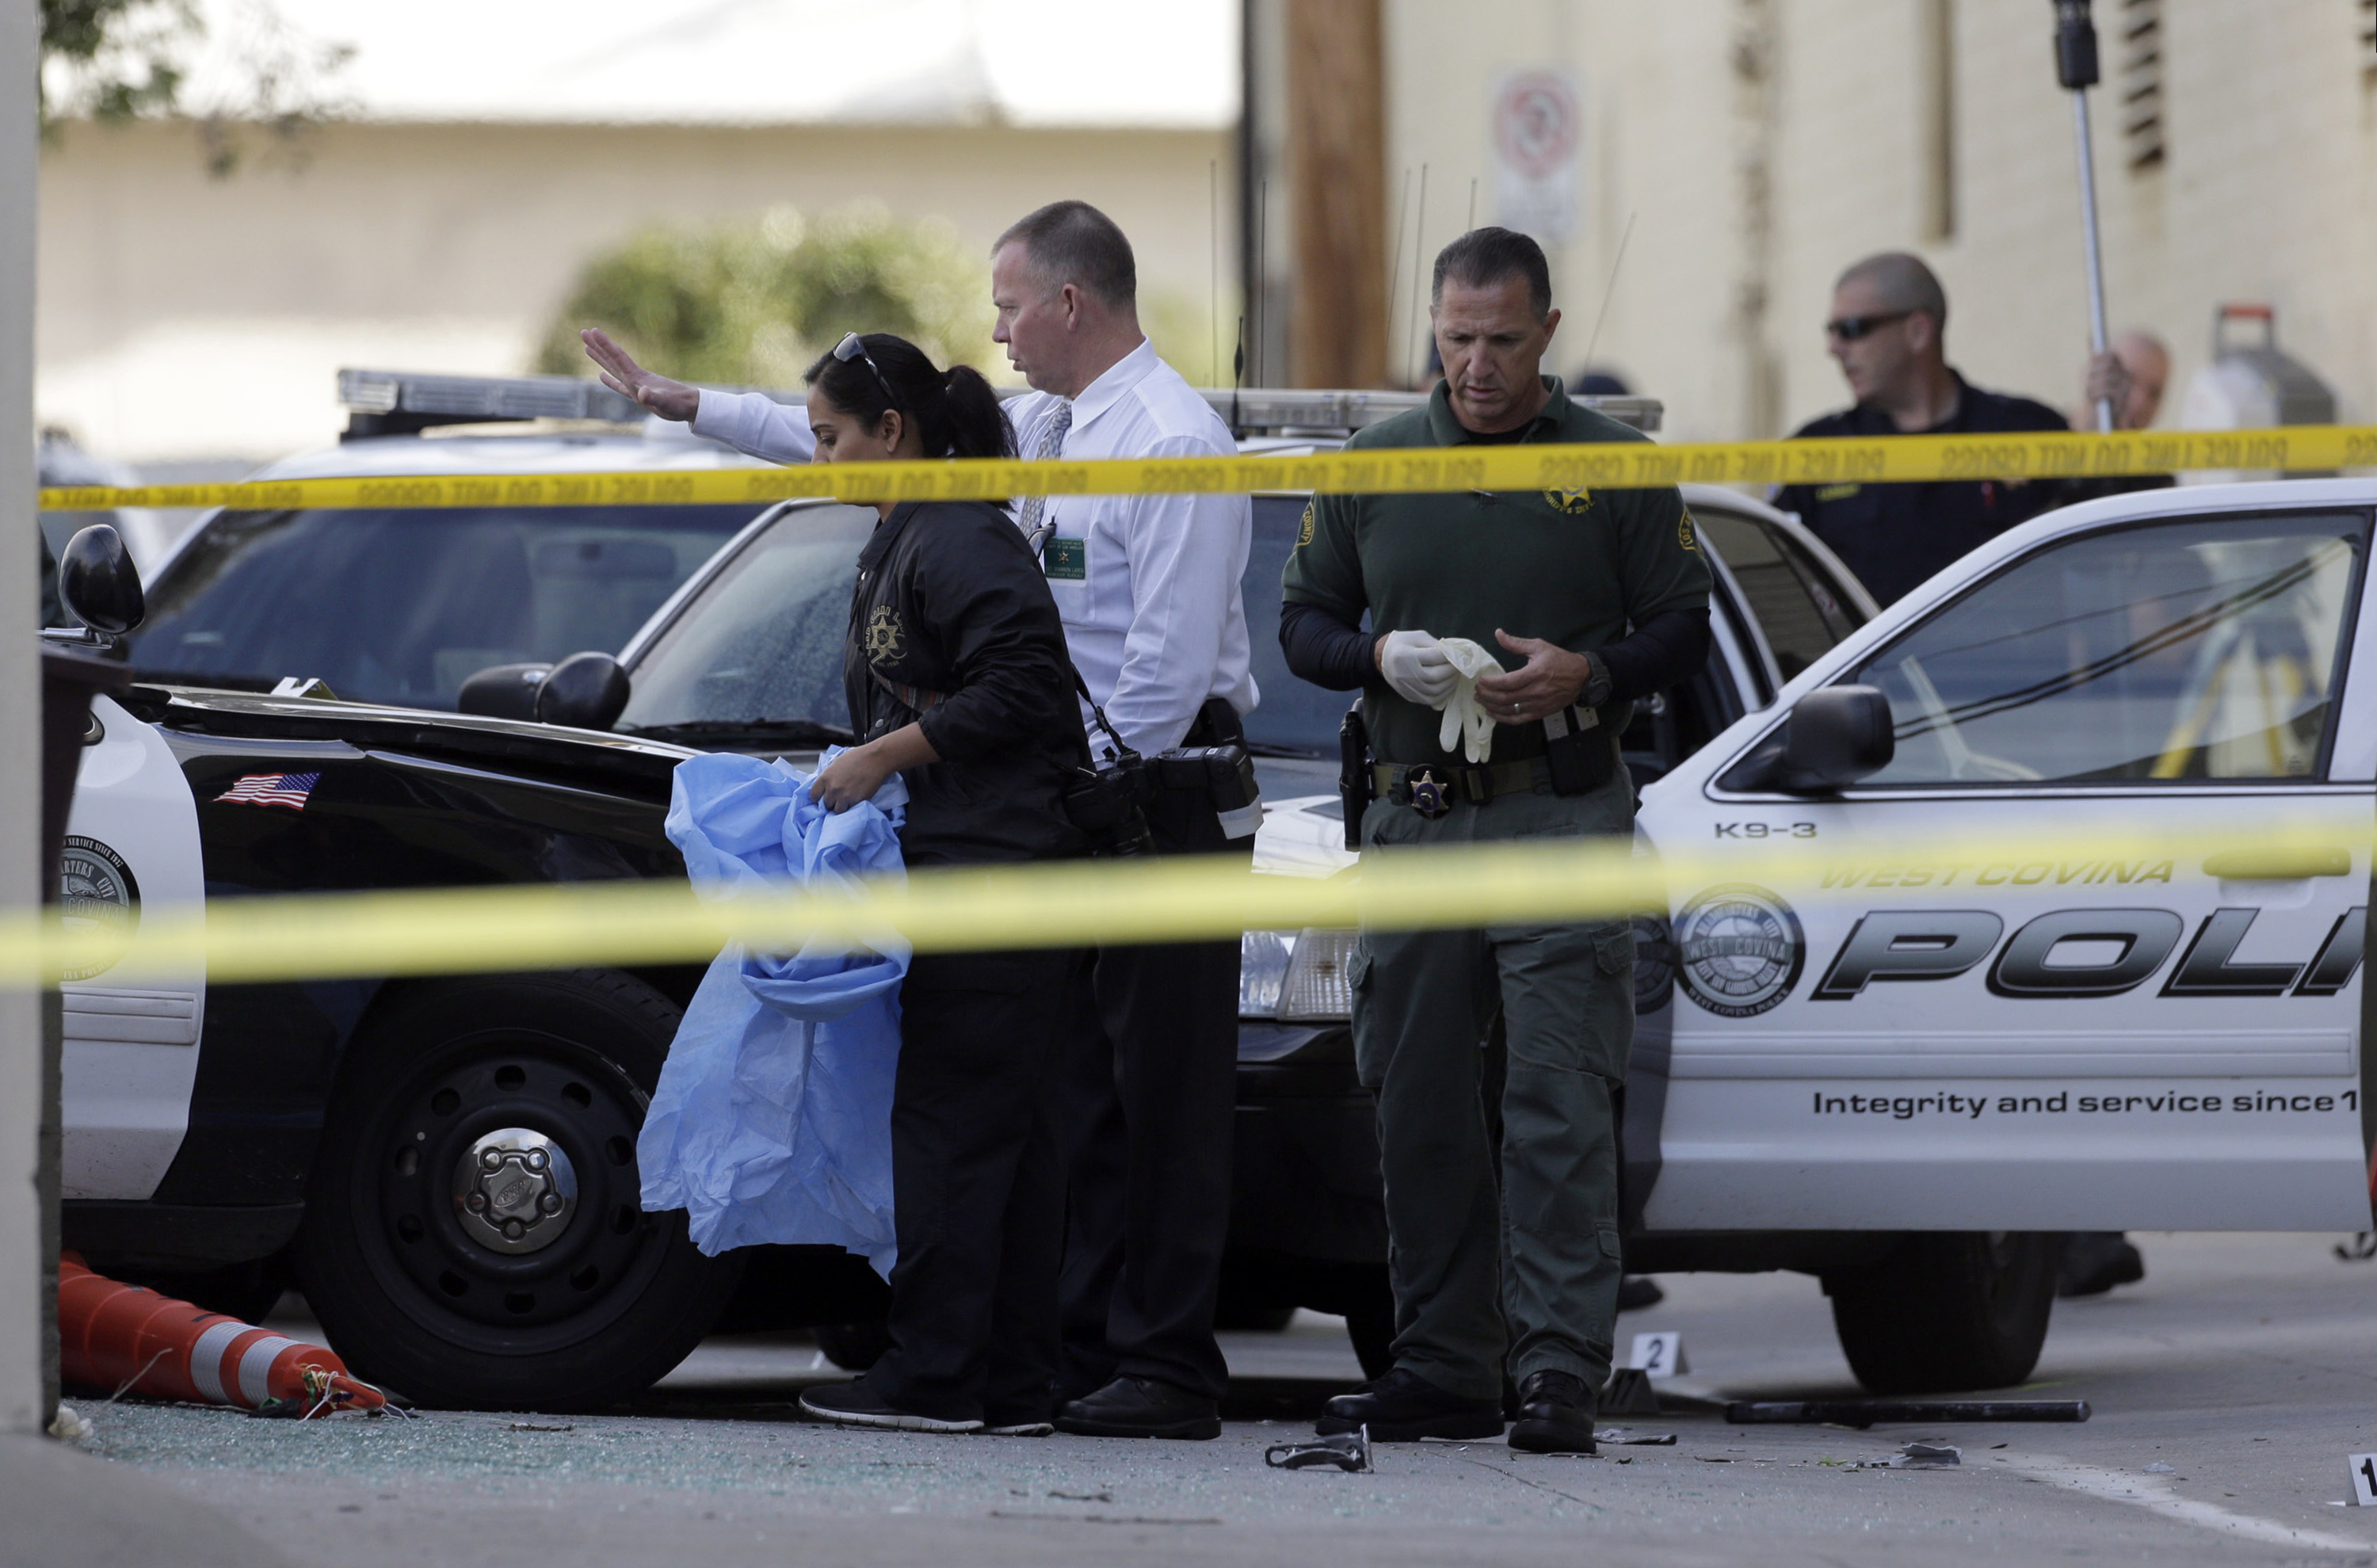 Los Angeles Suspect Shot Killed After Stealing Police